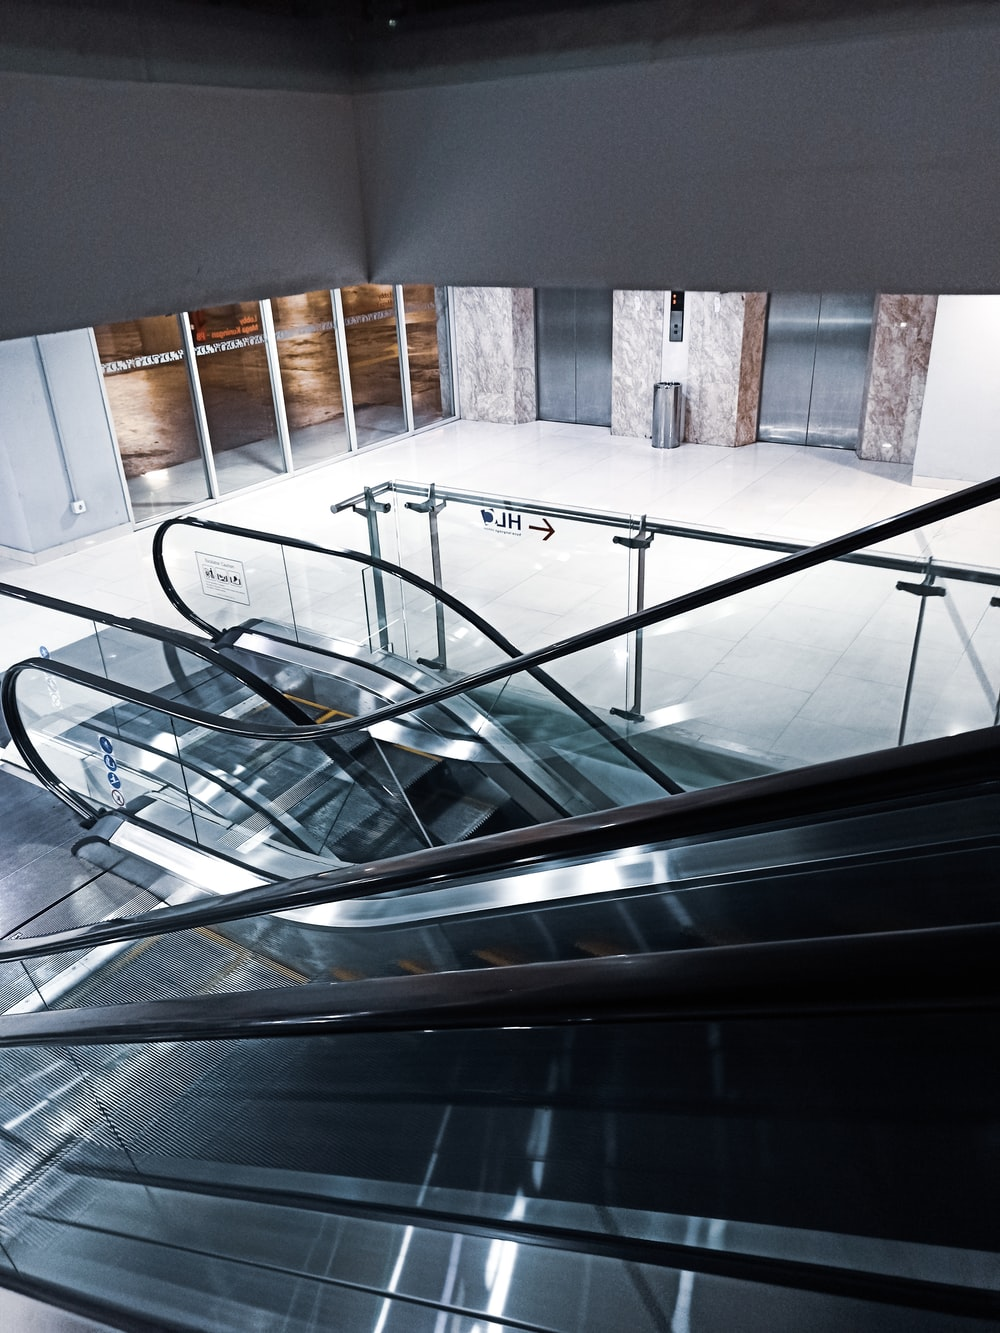 top-view photography of two escalators